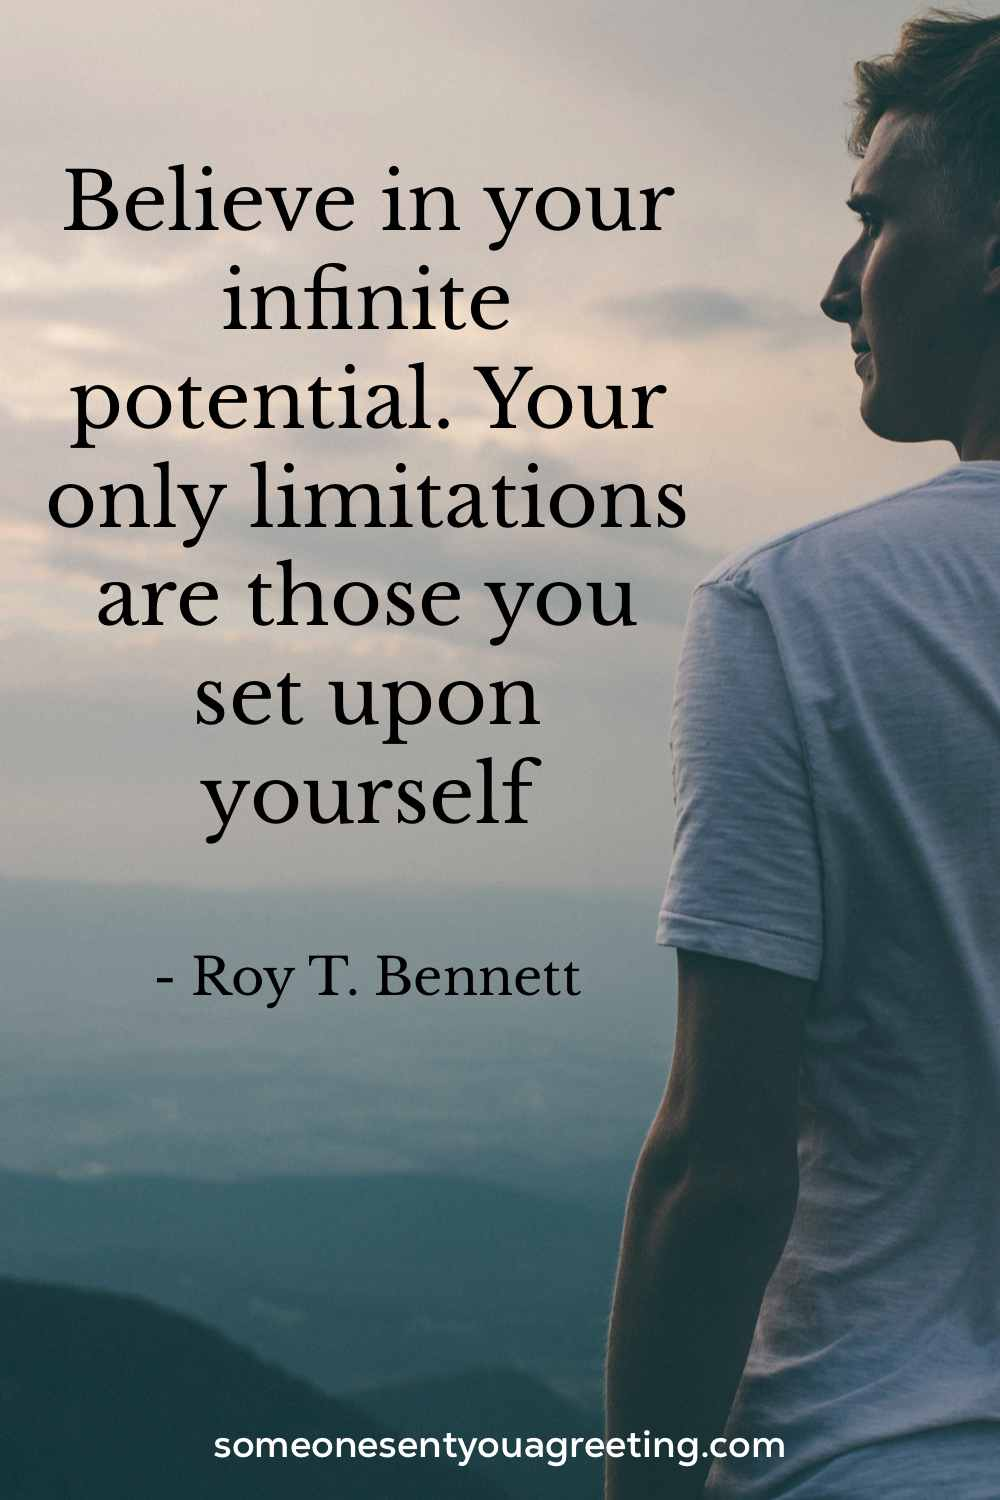 believe in your potential quote